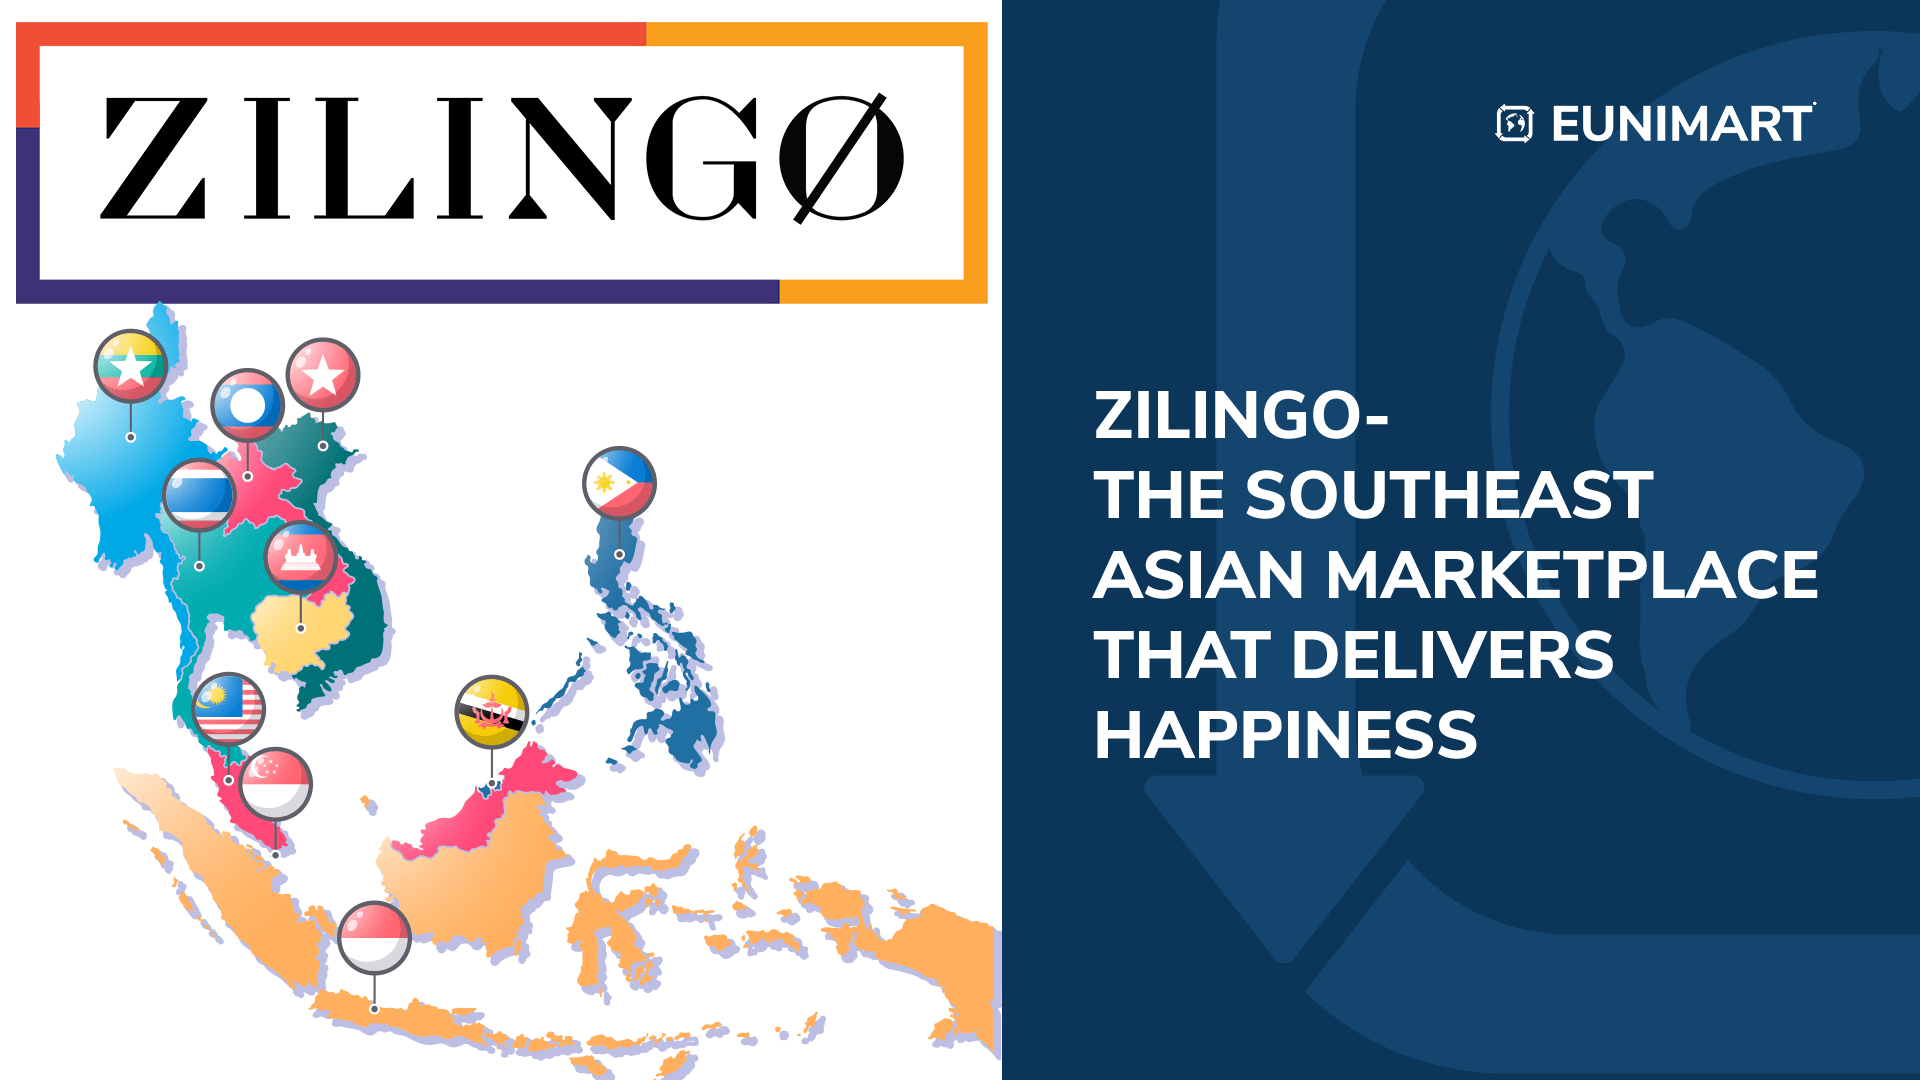 Zilingo- The Southeast Asian Marketplace that Delivers Happiness